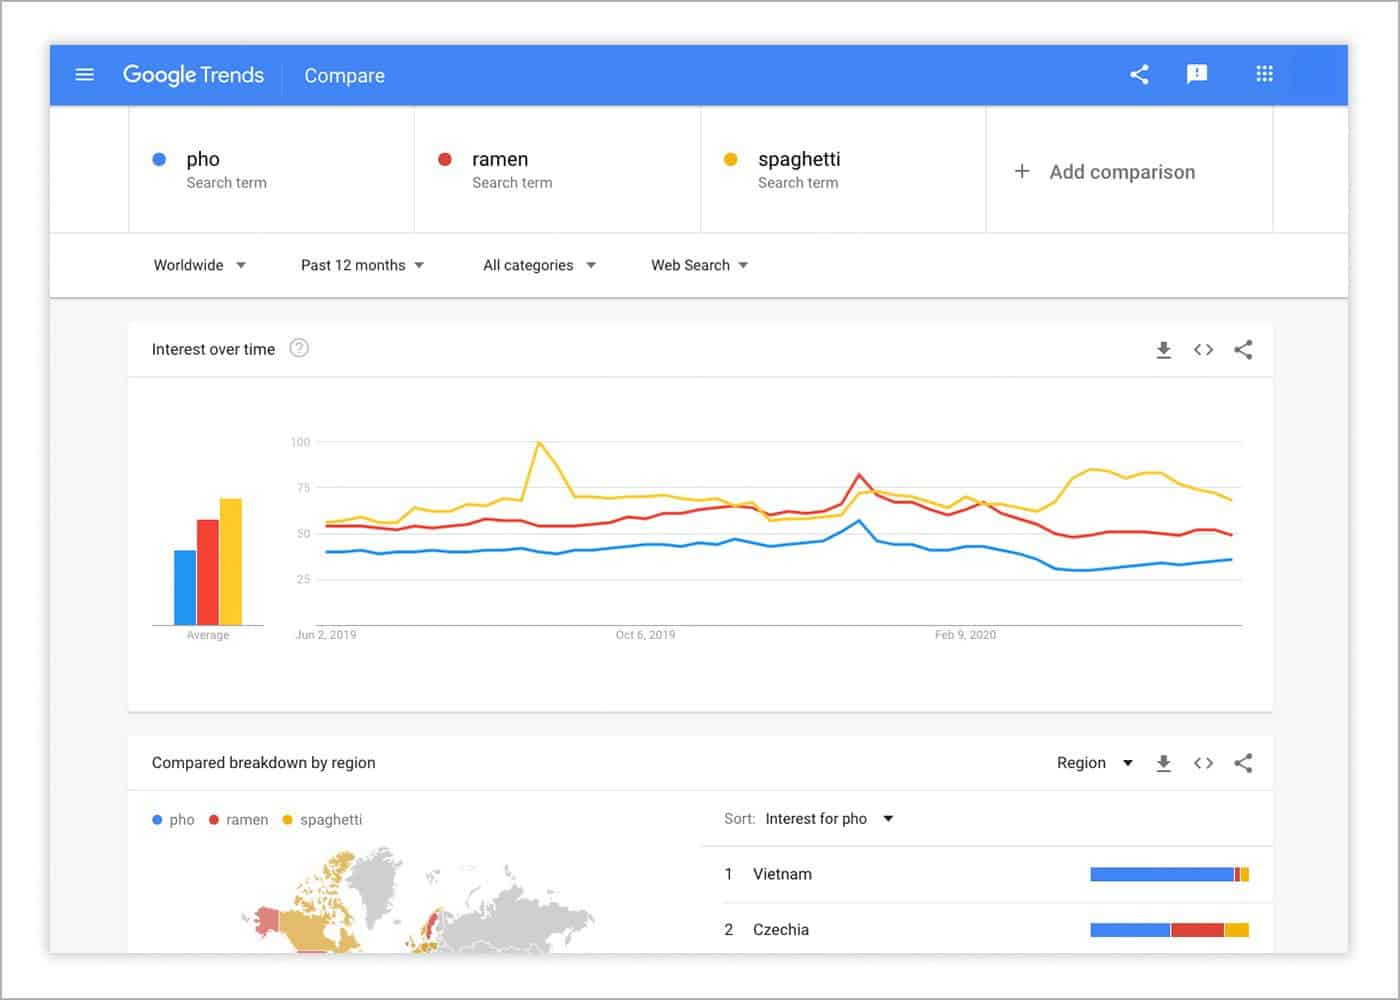 google trends data source